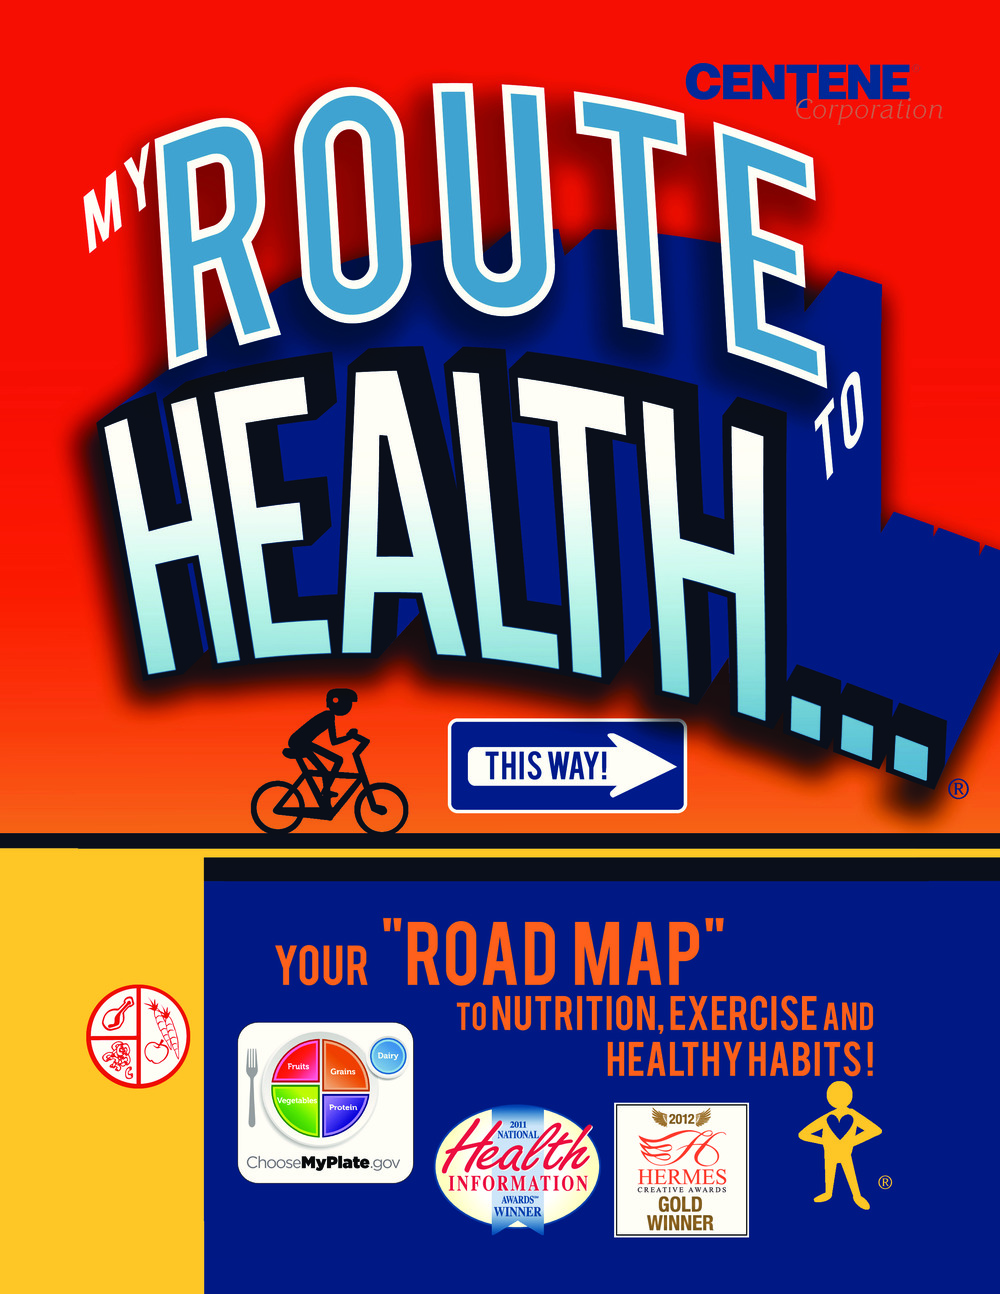 MY ROUTE TO HEALTH